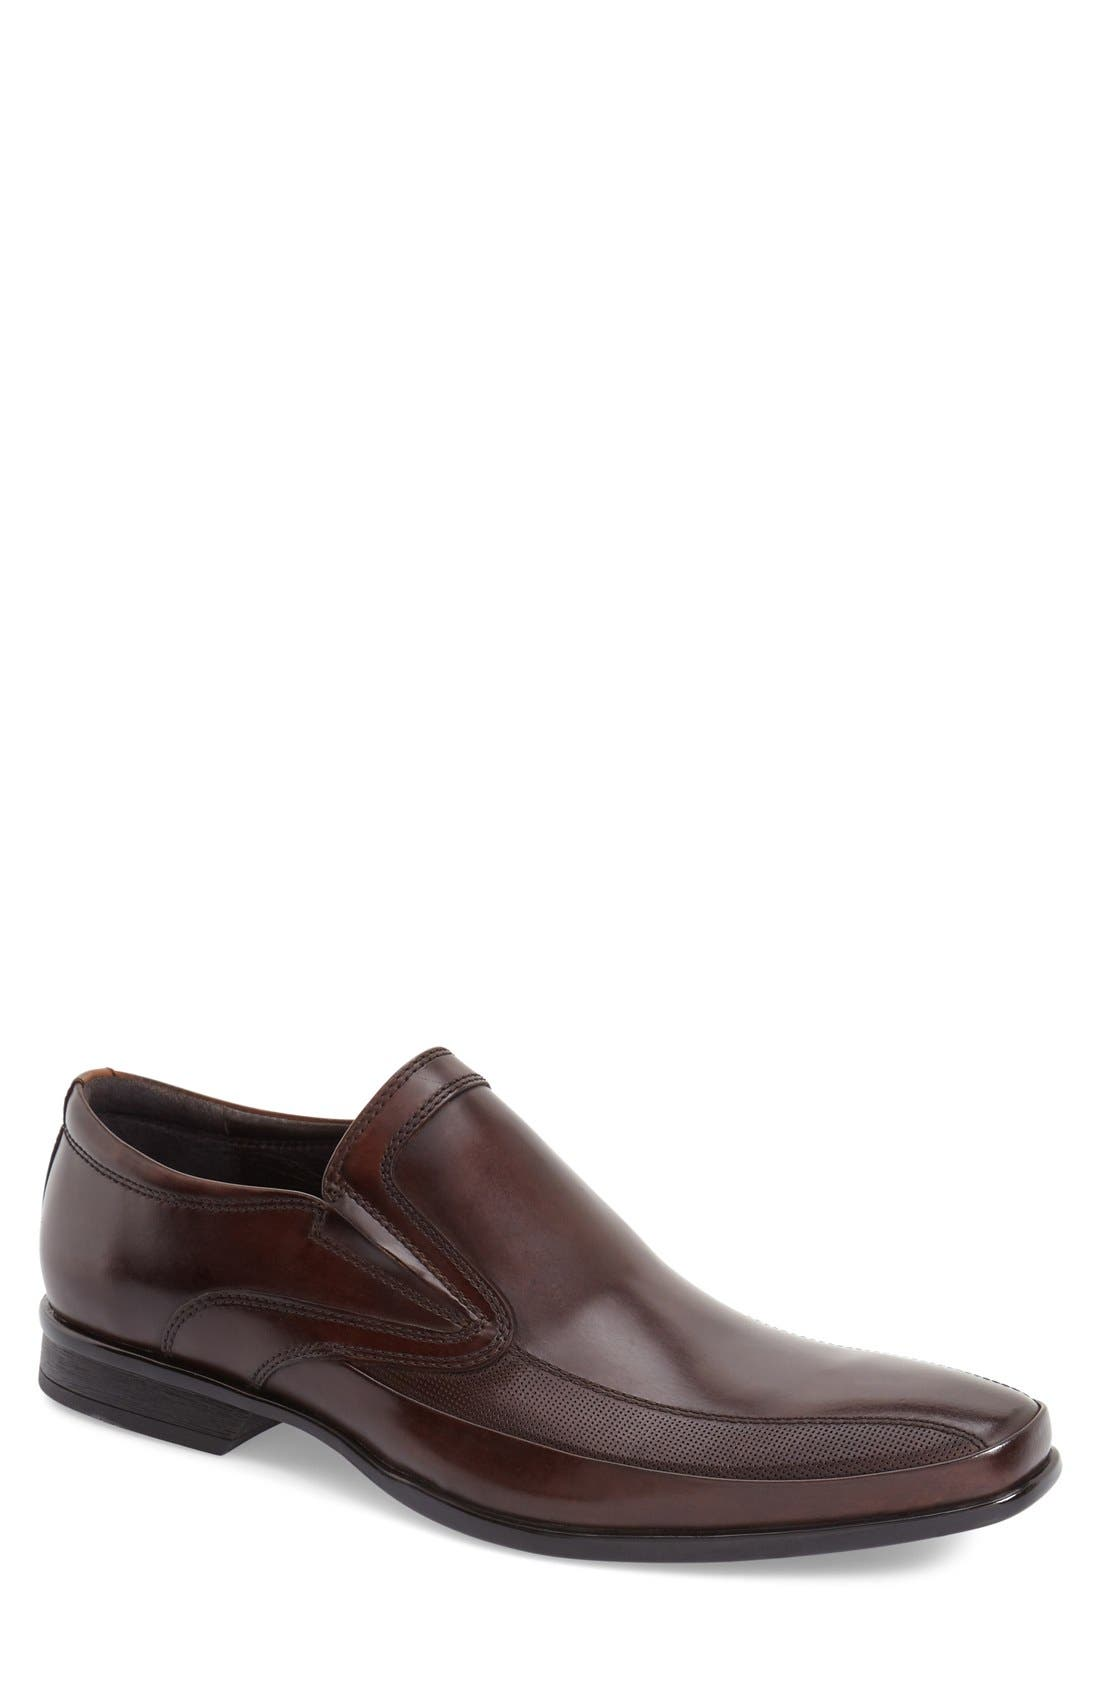 Kenneth Cole New York 'Extra Official' Venetian Loafer (Men)